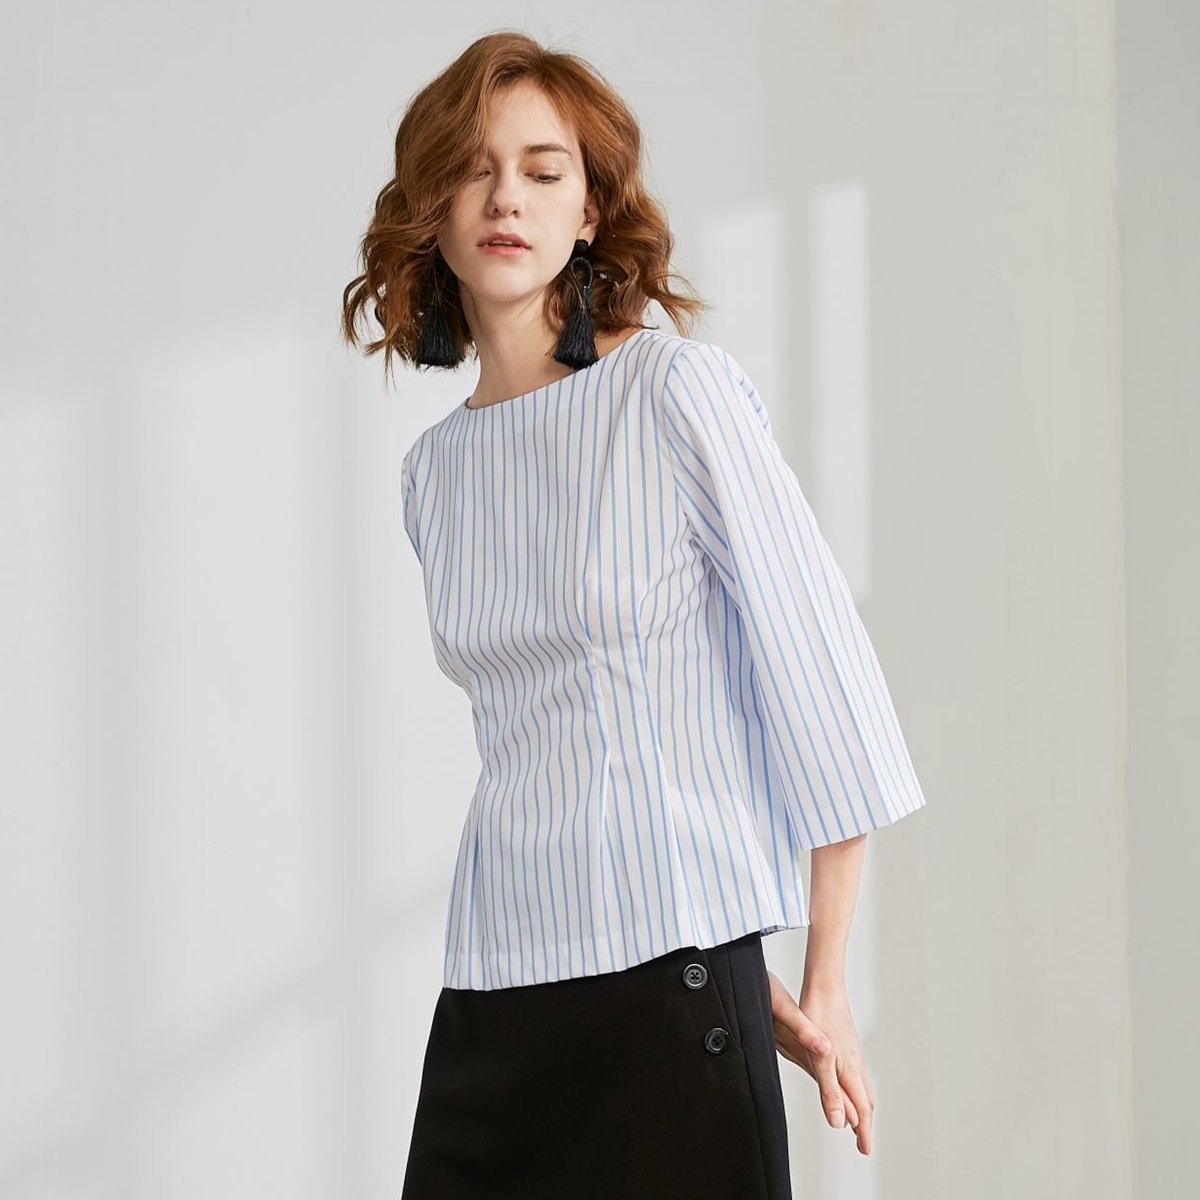 Women's Striped Top (White and Blue)